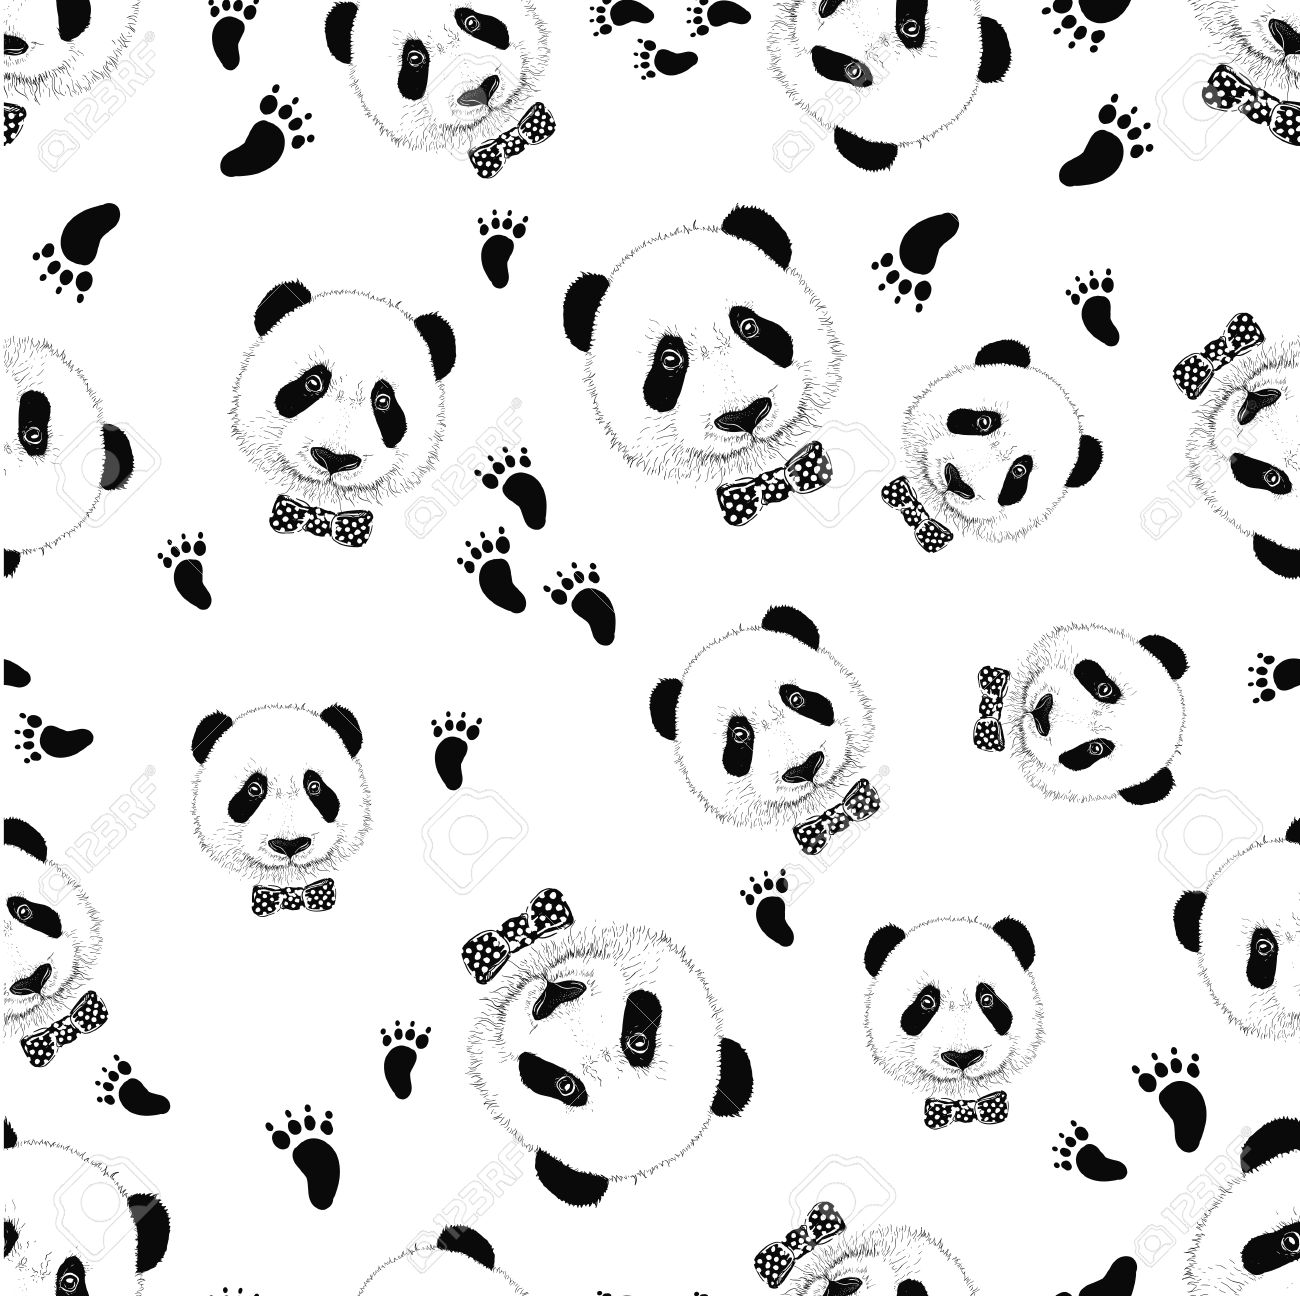 Hd Diwali Wallpapers Free Download Panda Face Wallpaper Gallery